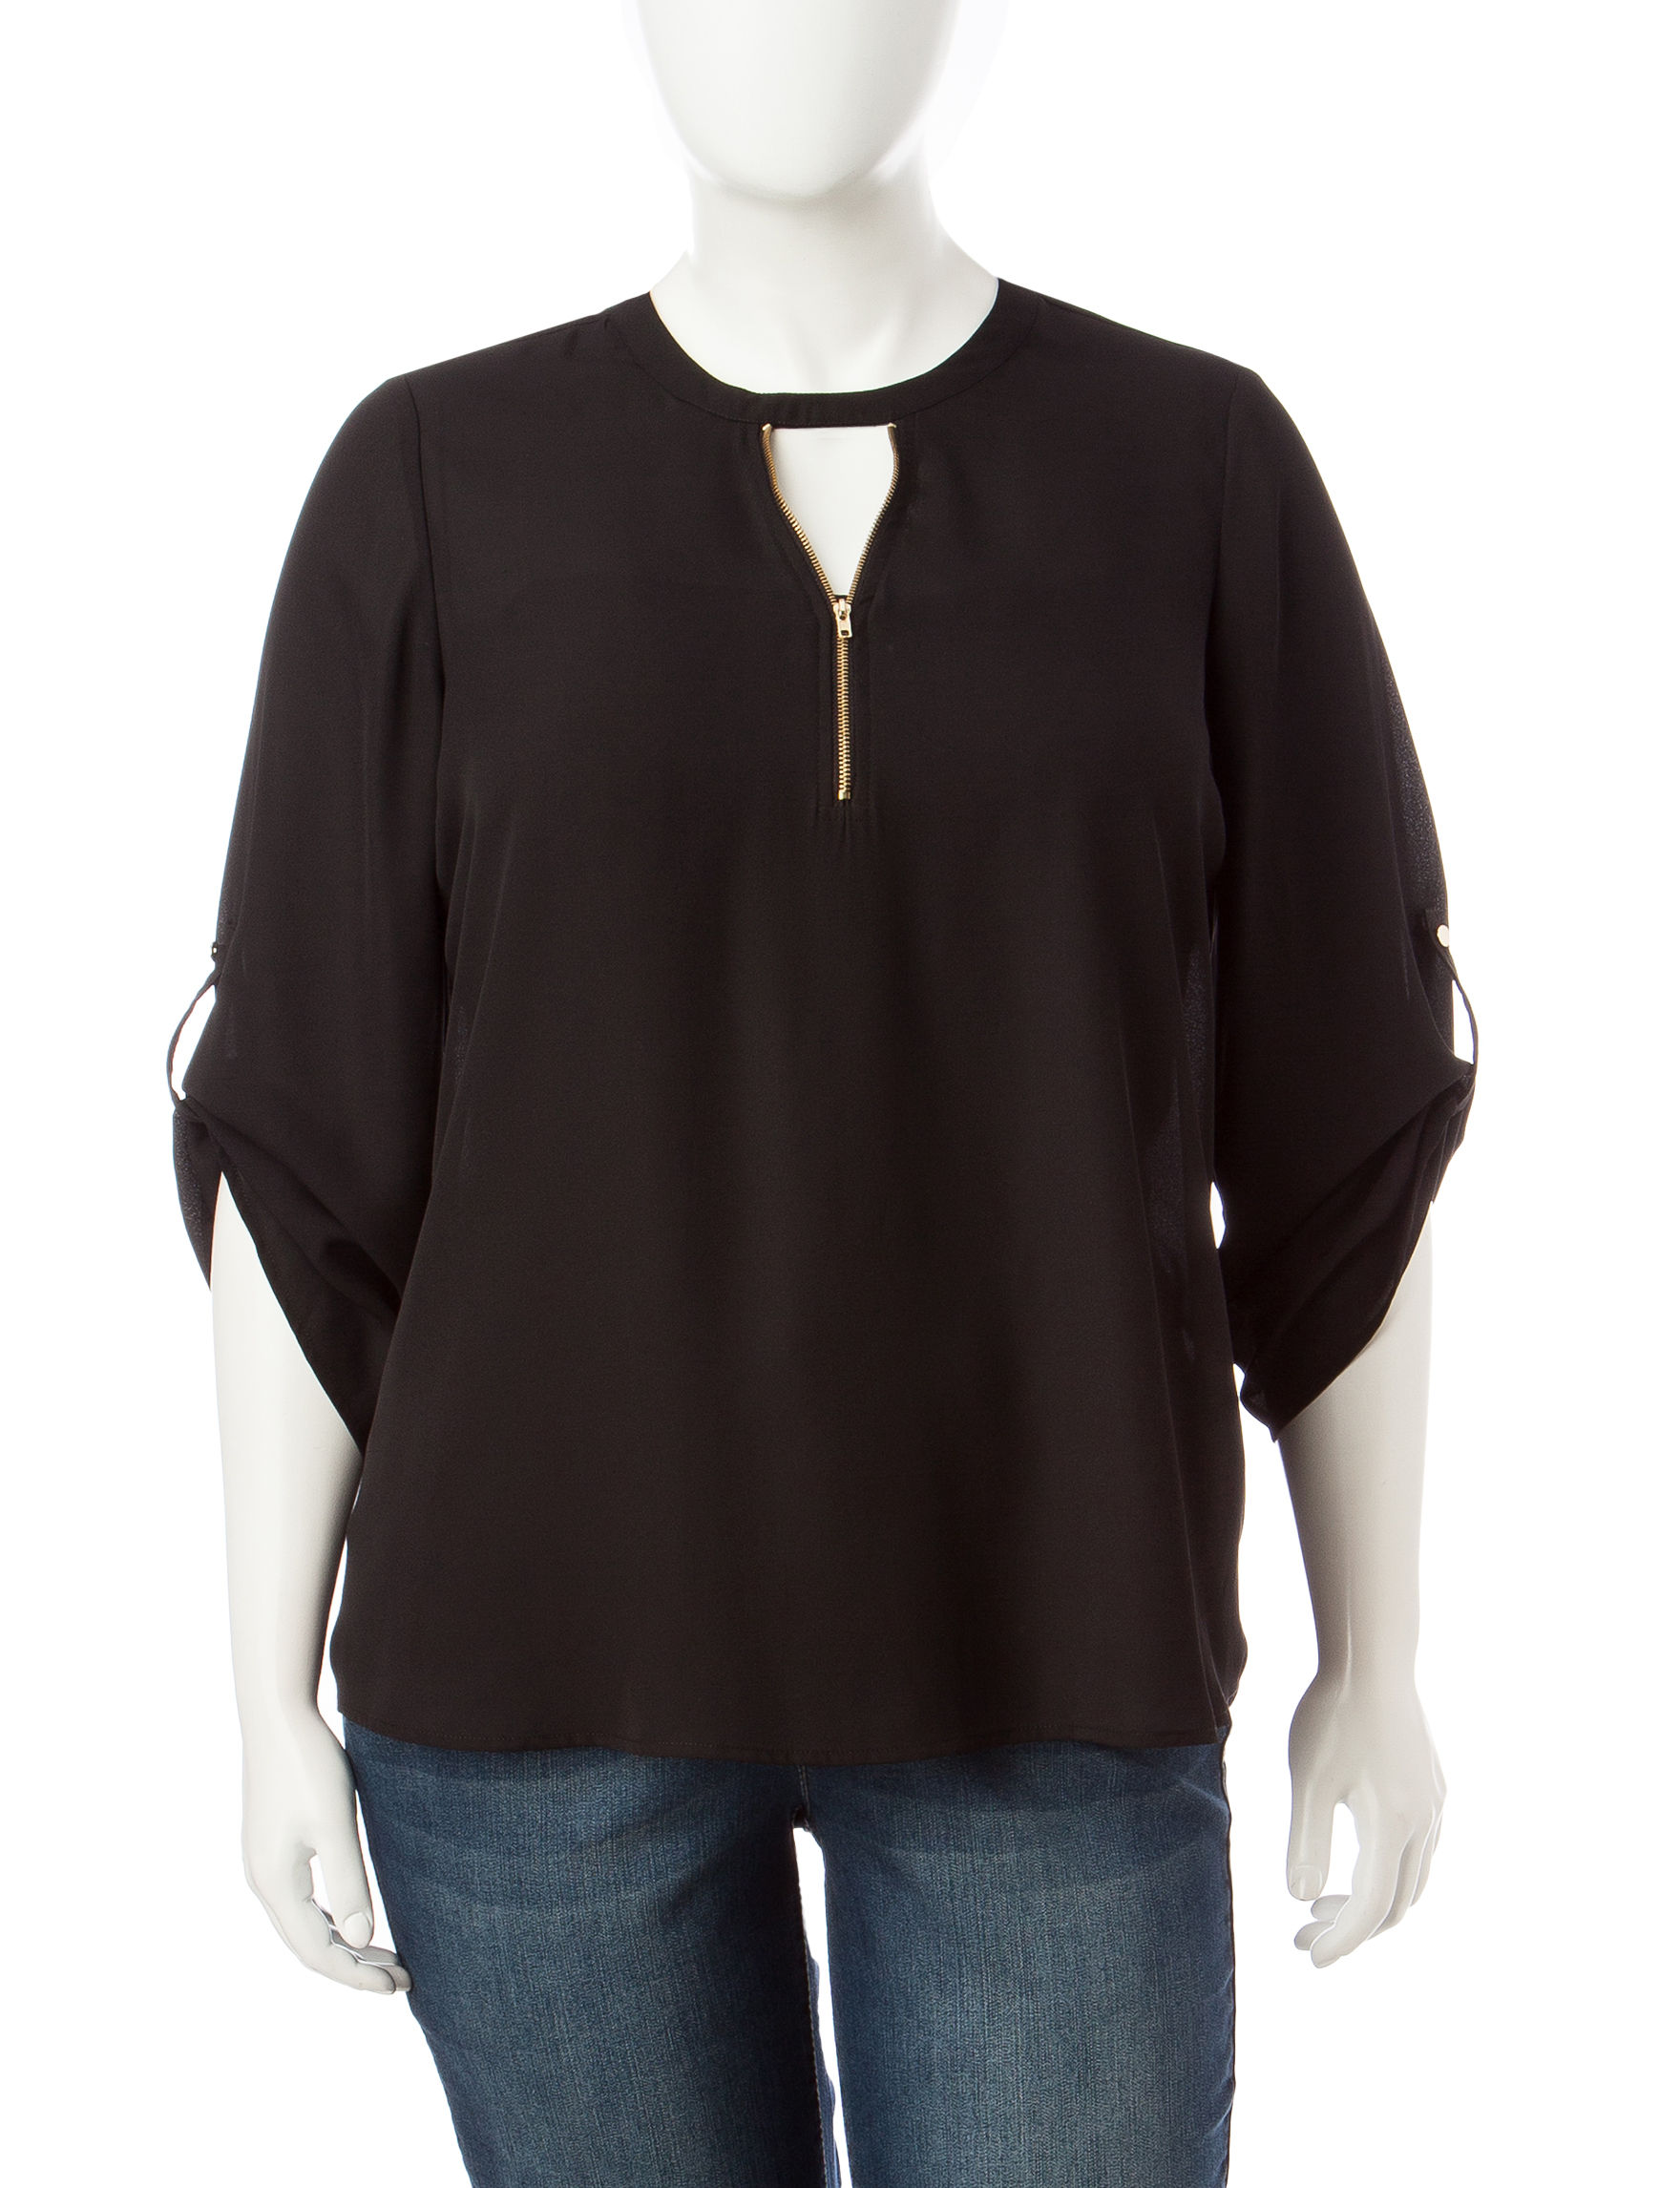 Justify Black Shirts & Blouses